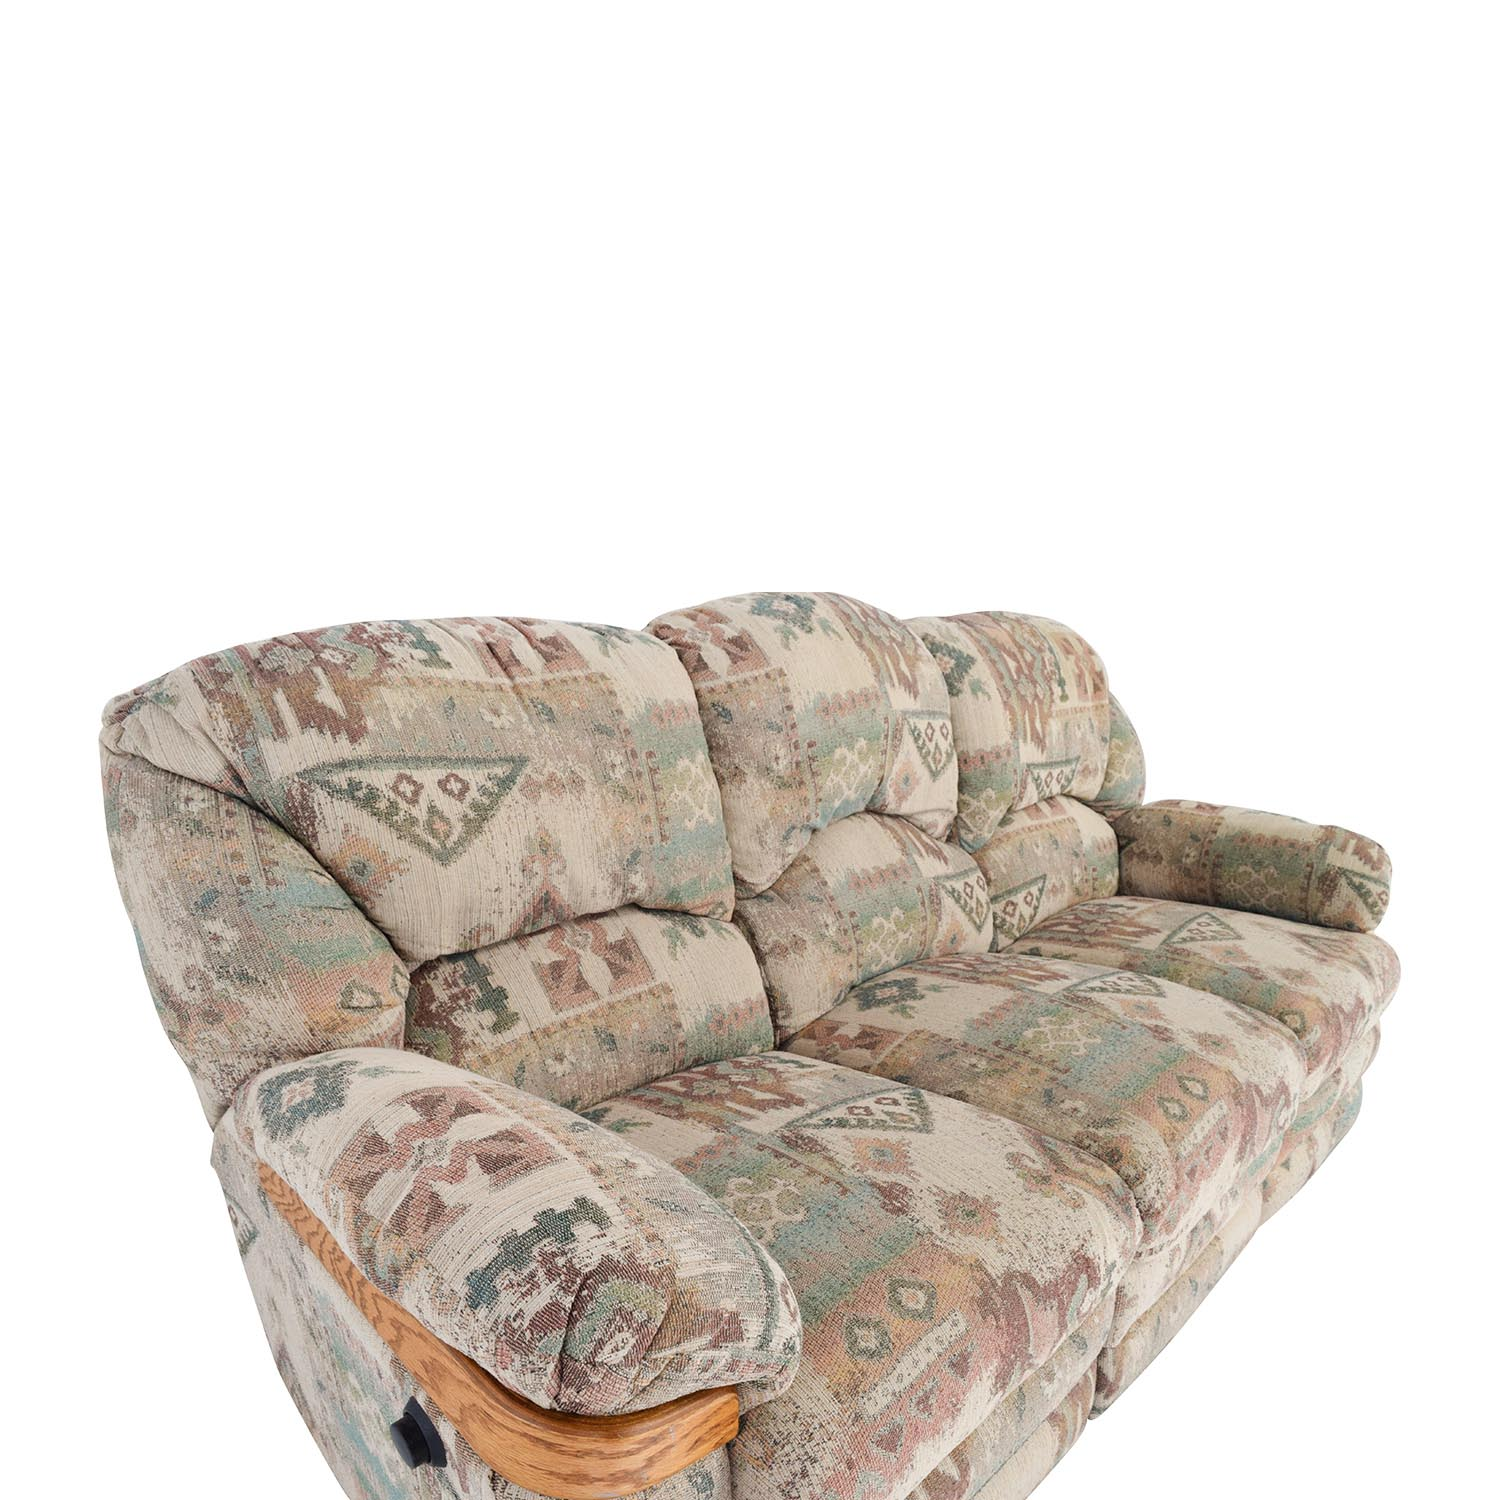 Patterned Fabric Recliner Sofa used